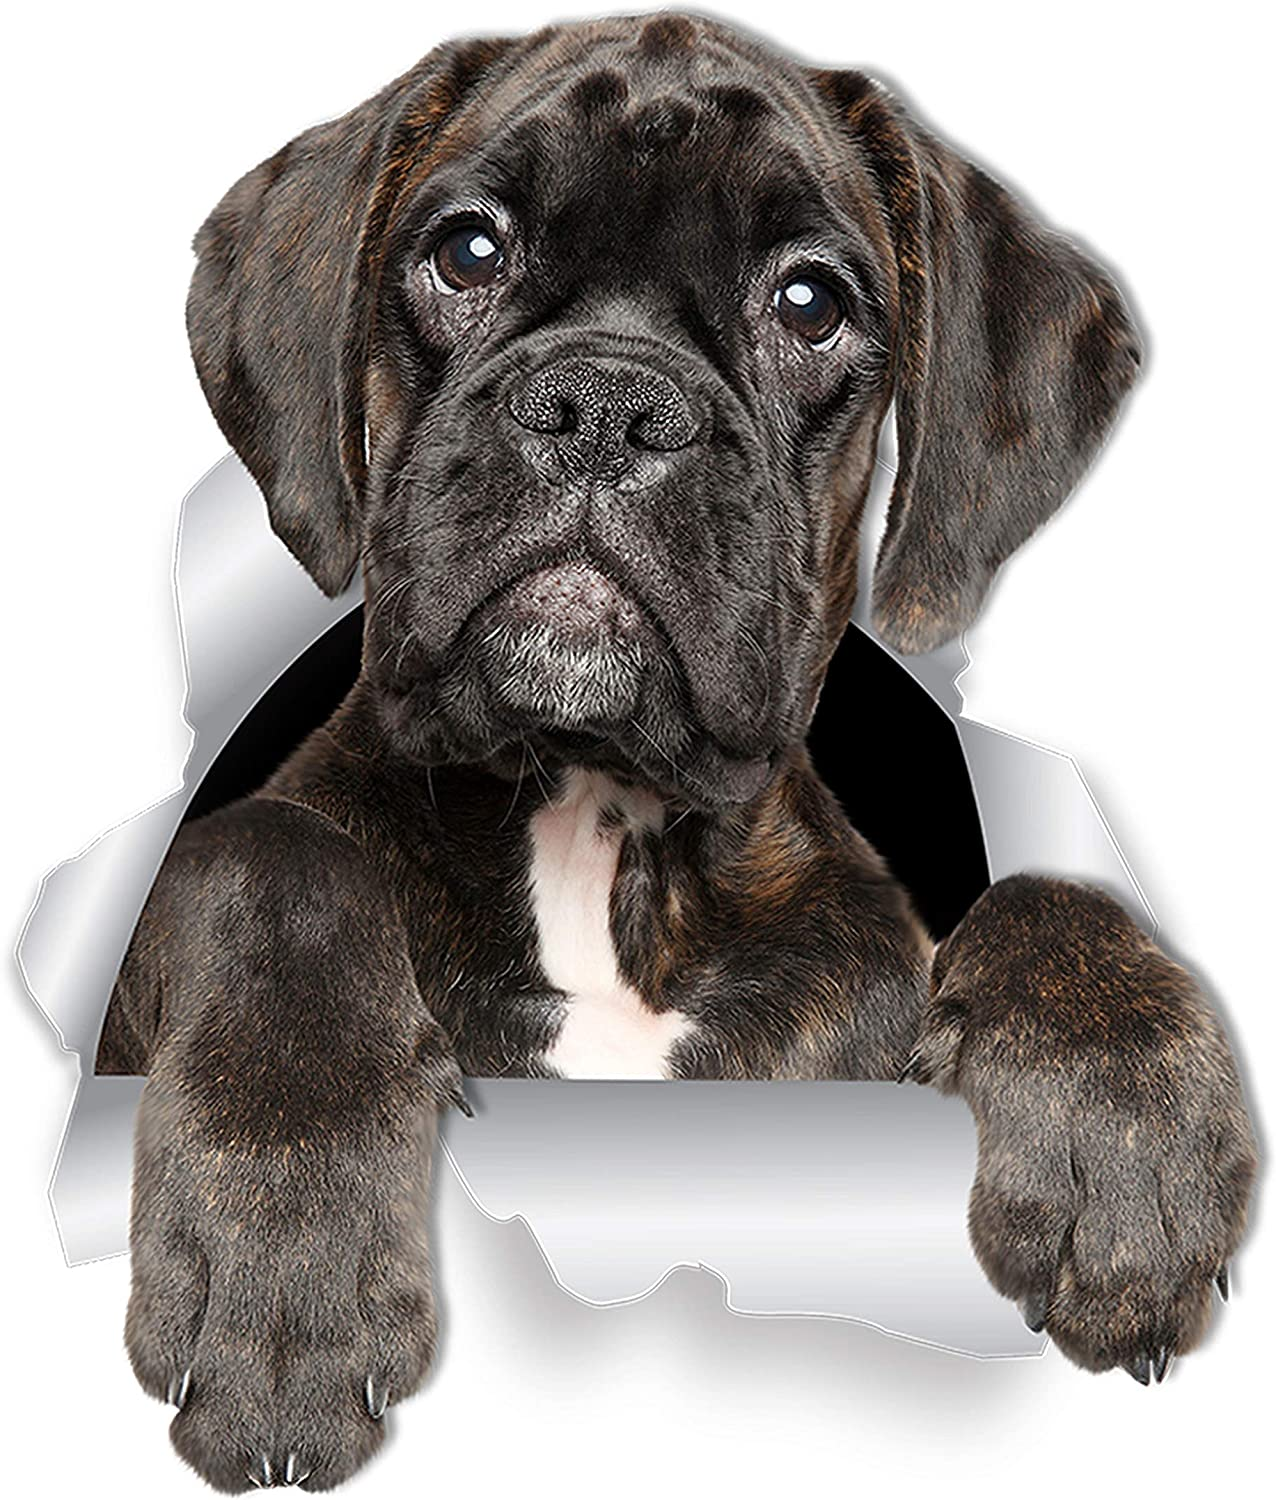 Winston & Bear Adorable Boxer Dog Wall Decals - 2 Pack - Boxer Dog 3D Sticker Decals for Walls, Cars, Toilet and More - Retail Packaged Boxer Dog Gifts